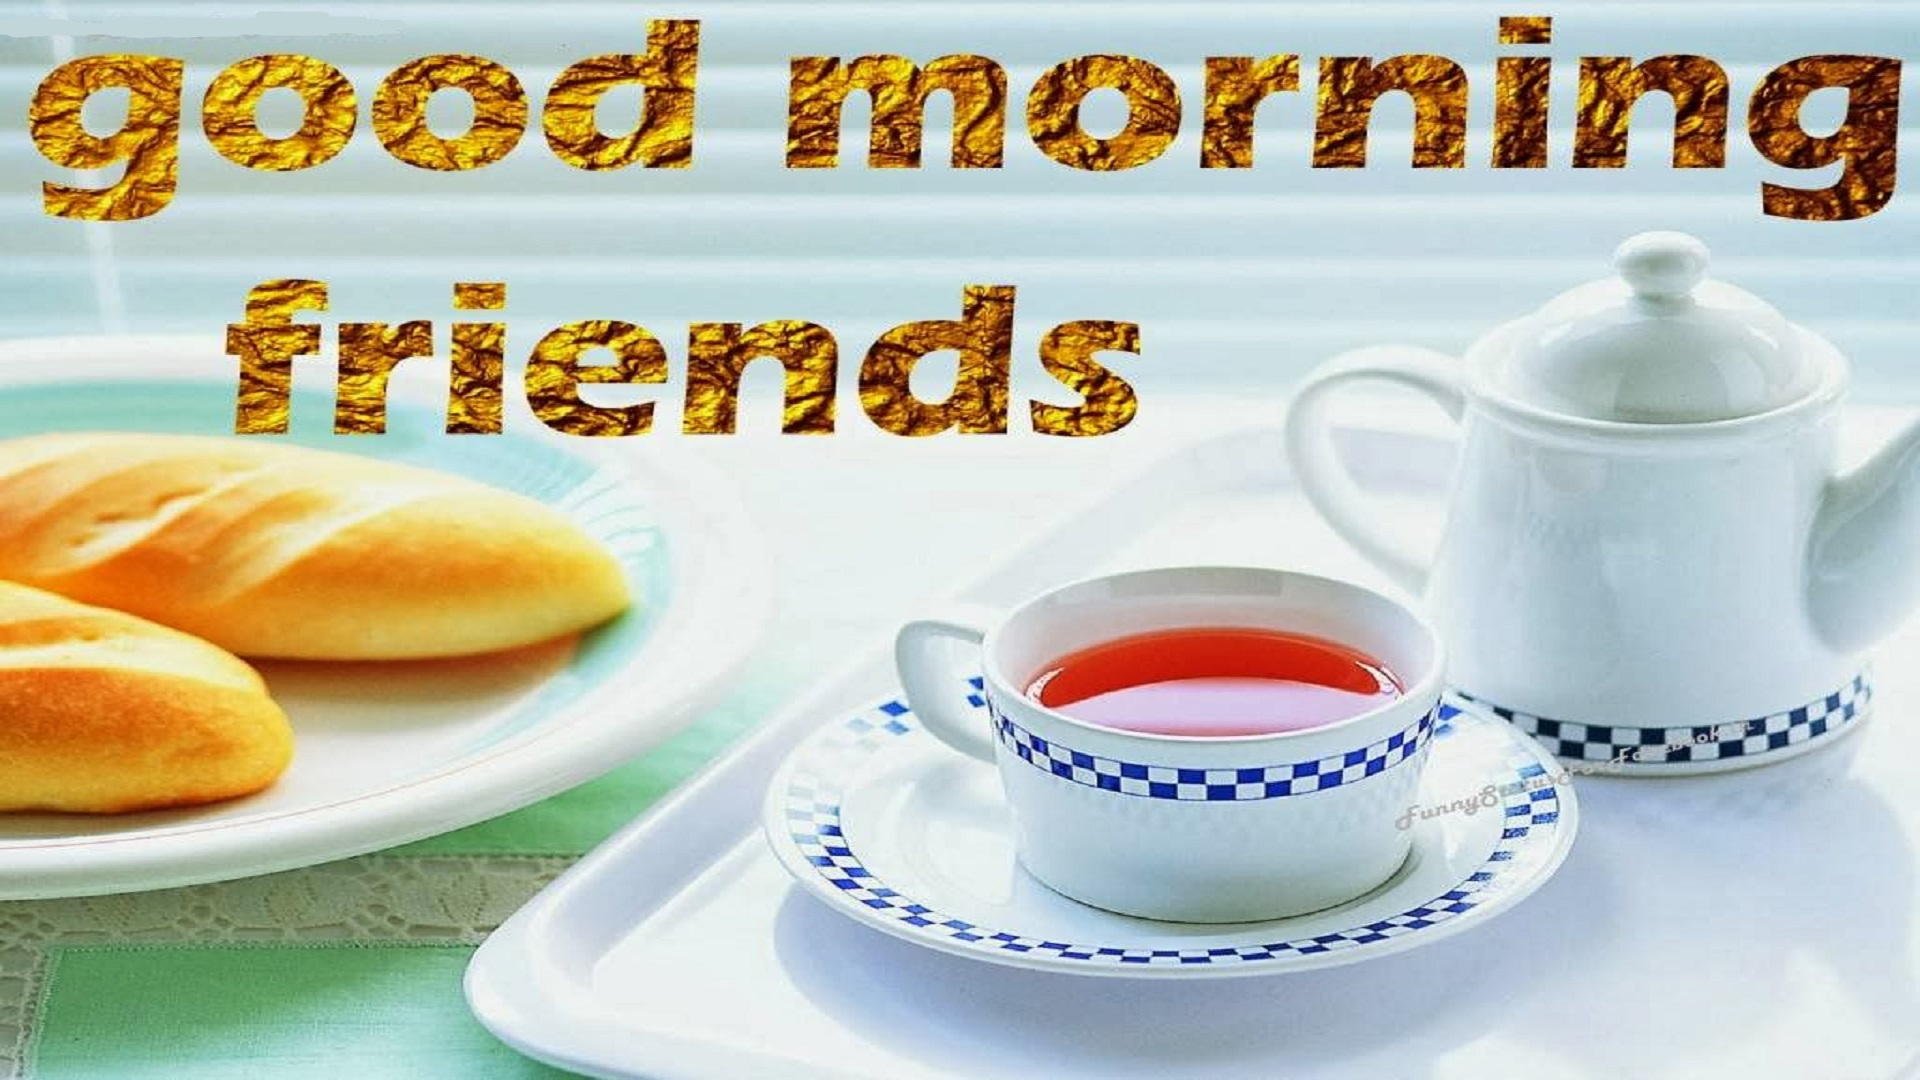 100 Great Good Morning Friends Name Image Soaknowledge